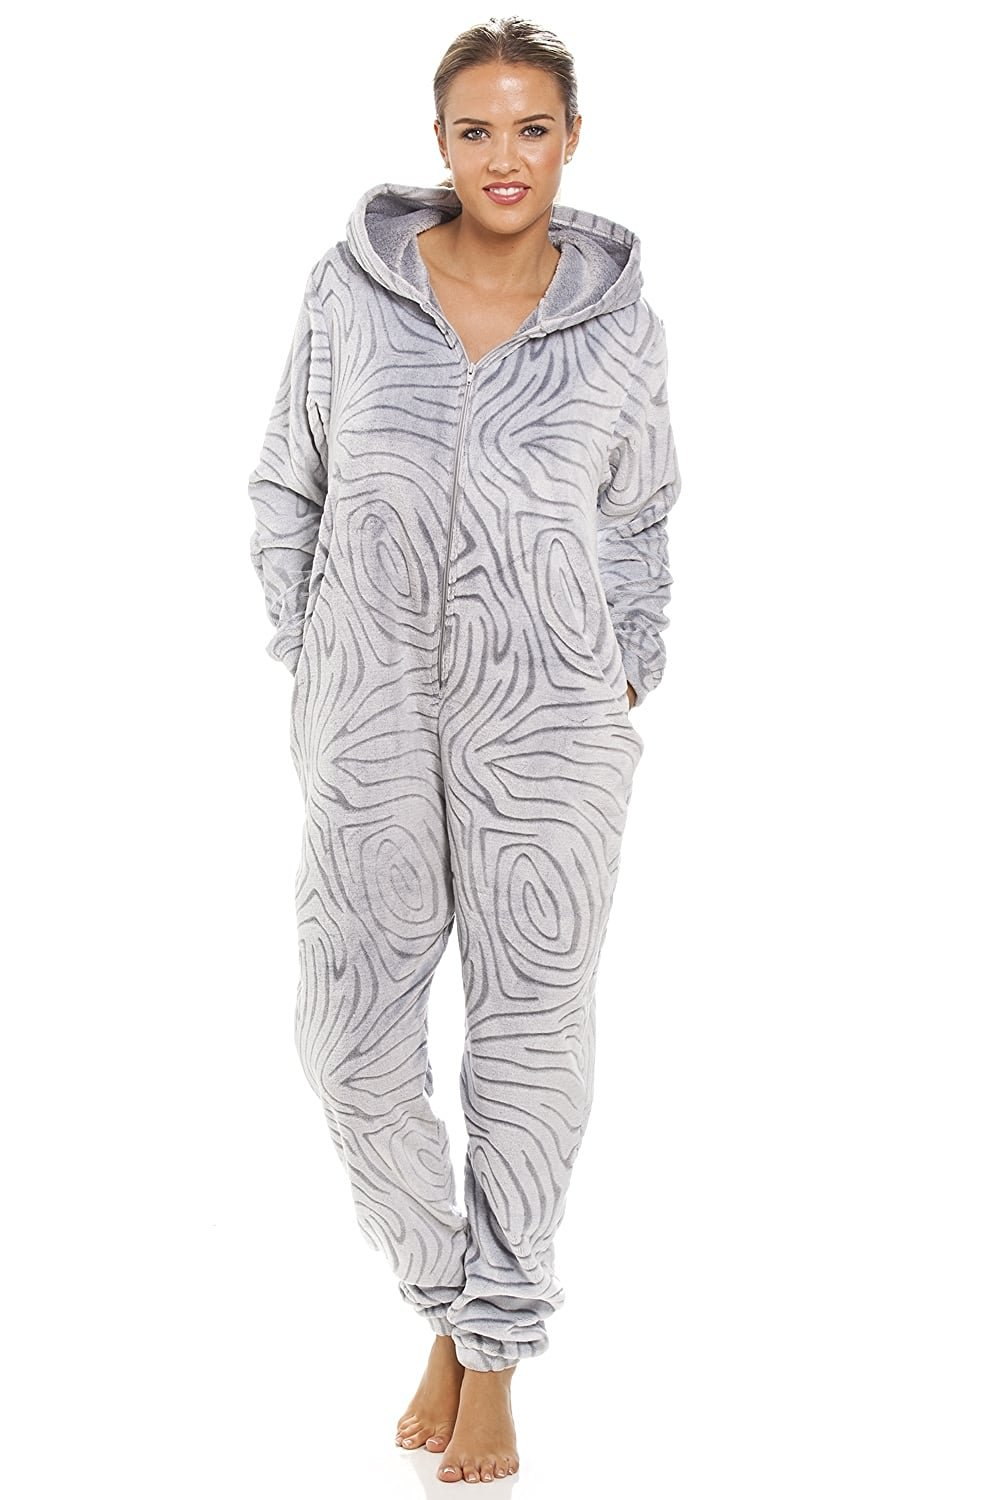 a852db9faaf Get Quotations · Camille Womens Ladies Gray Supersoft Fleece Zebra Print  Hooded Onesie